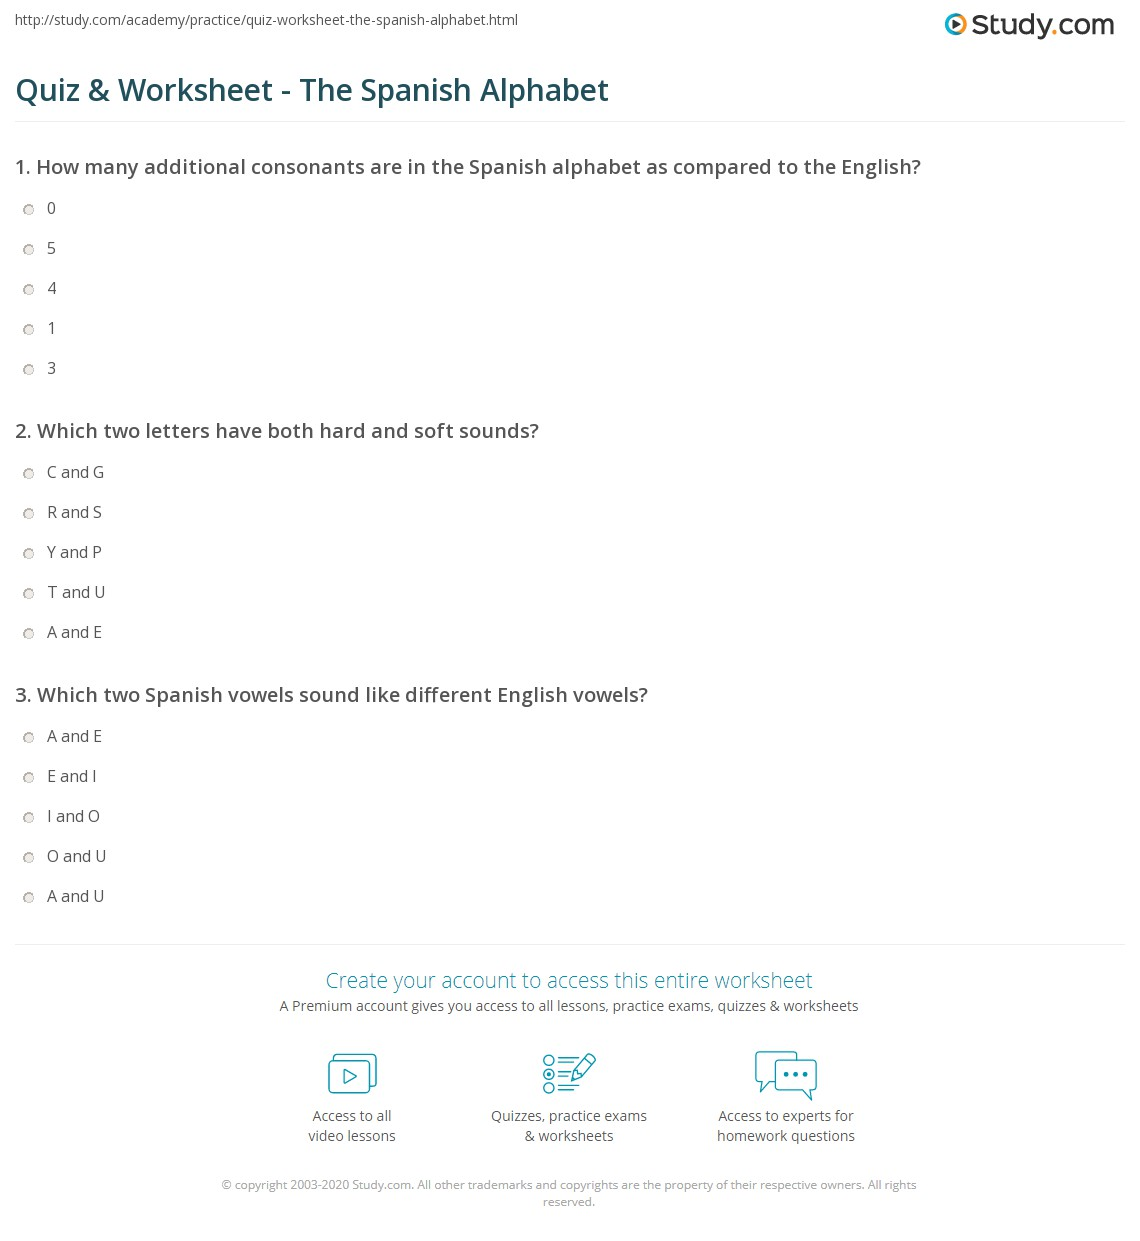 Quiz & Worksheet - The Spanish Alphabet | Study.com